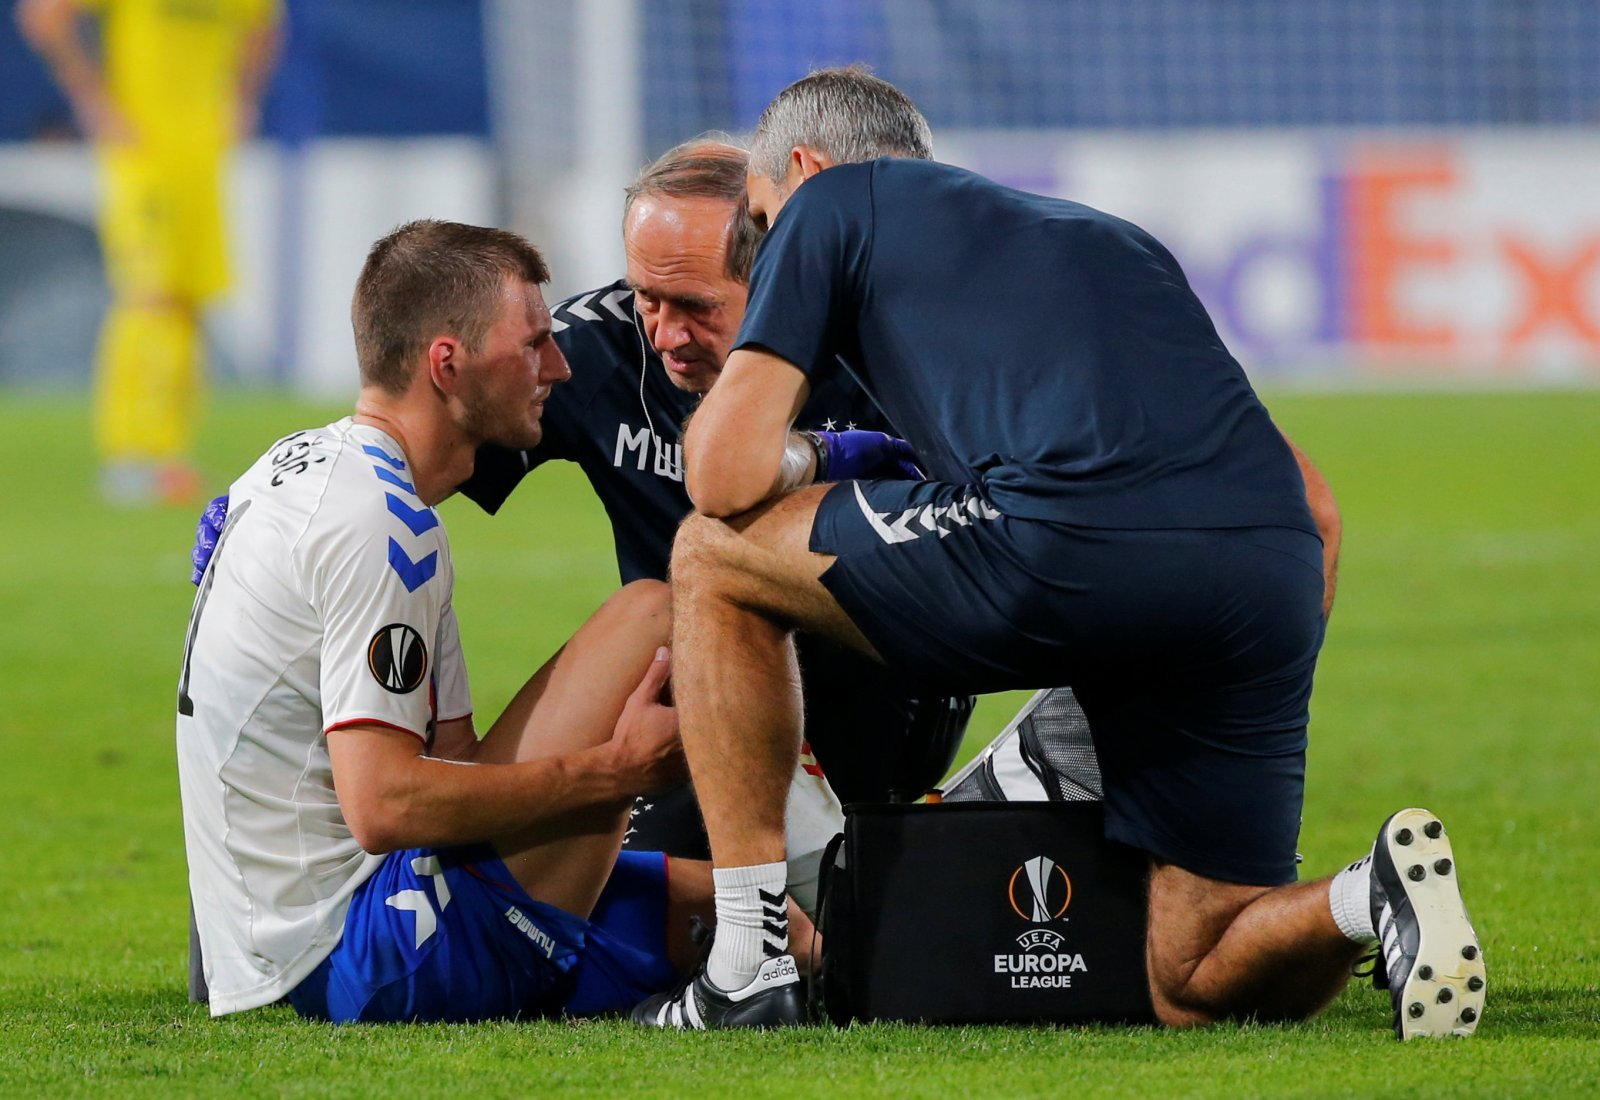 Borna Barisic ruled out of Scottish Cup semi-final